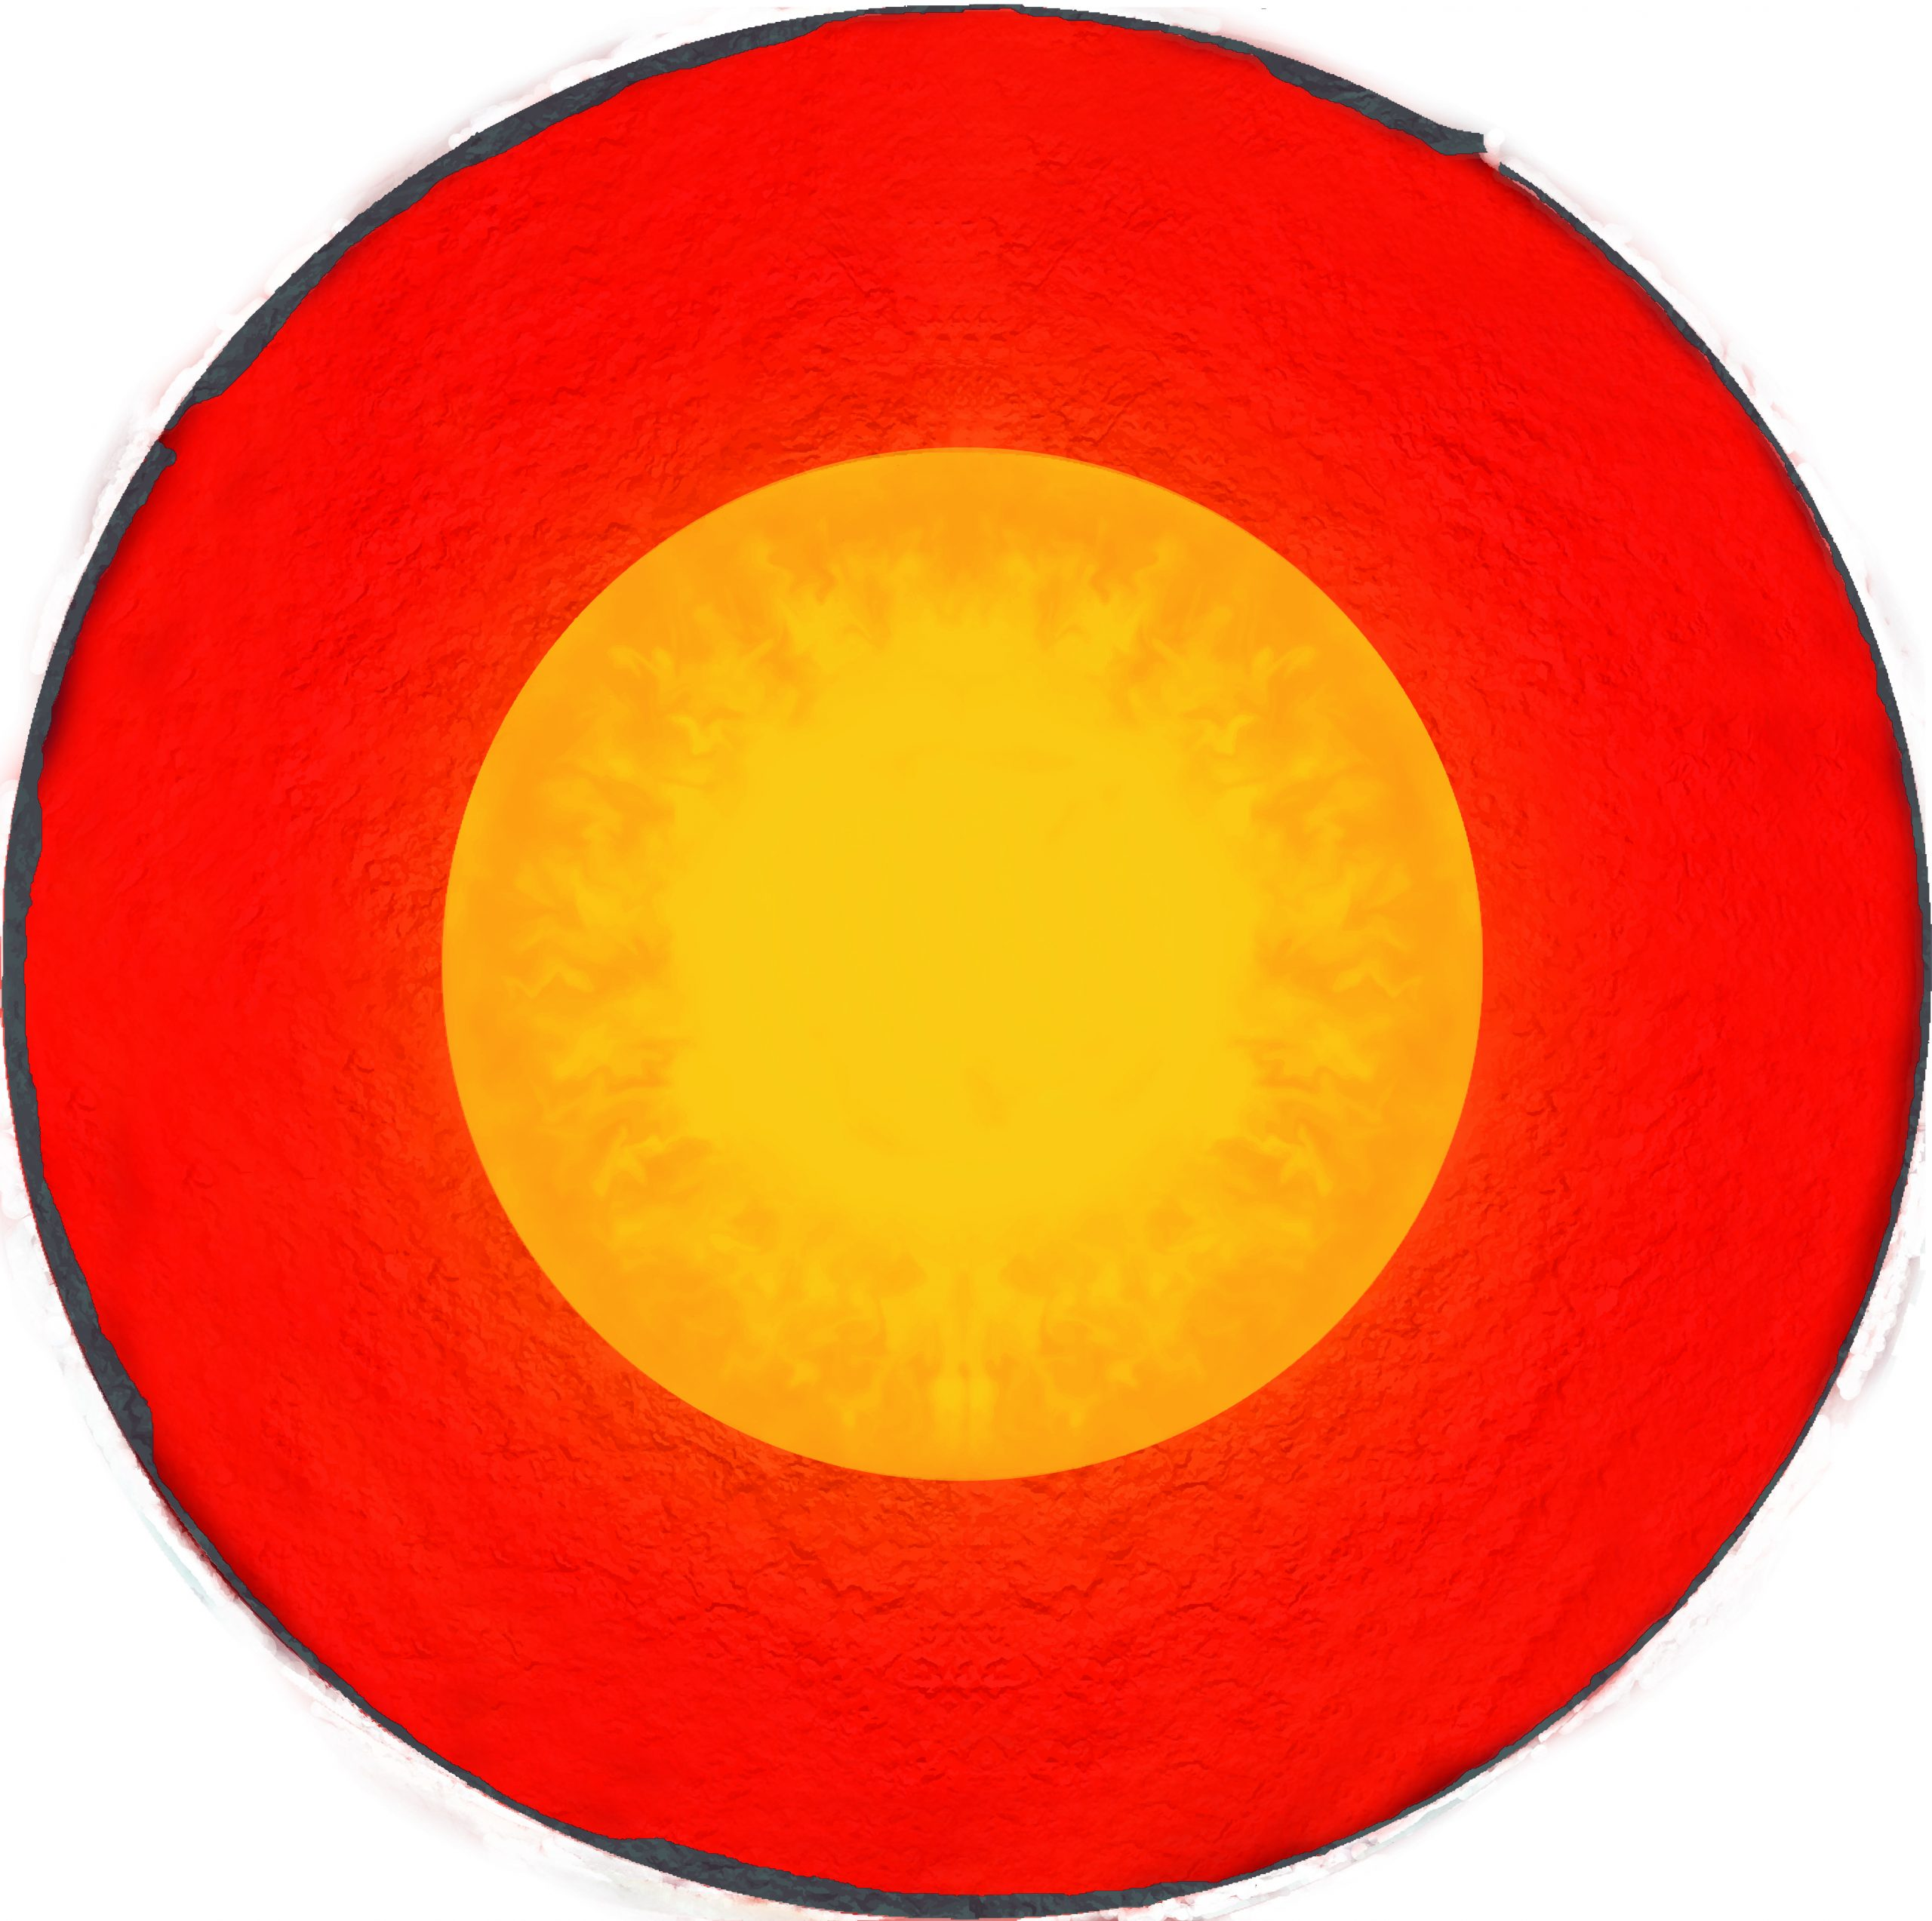 Discovery of the outer core: 1906